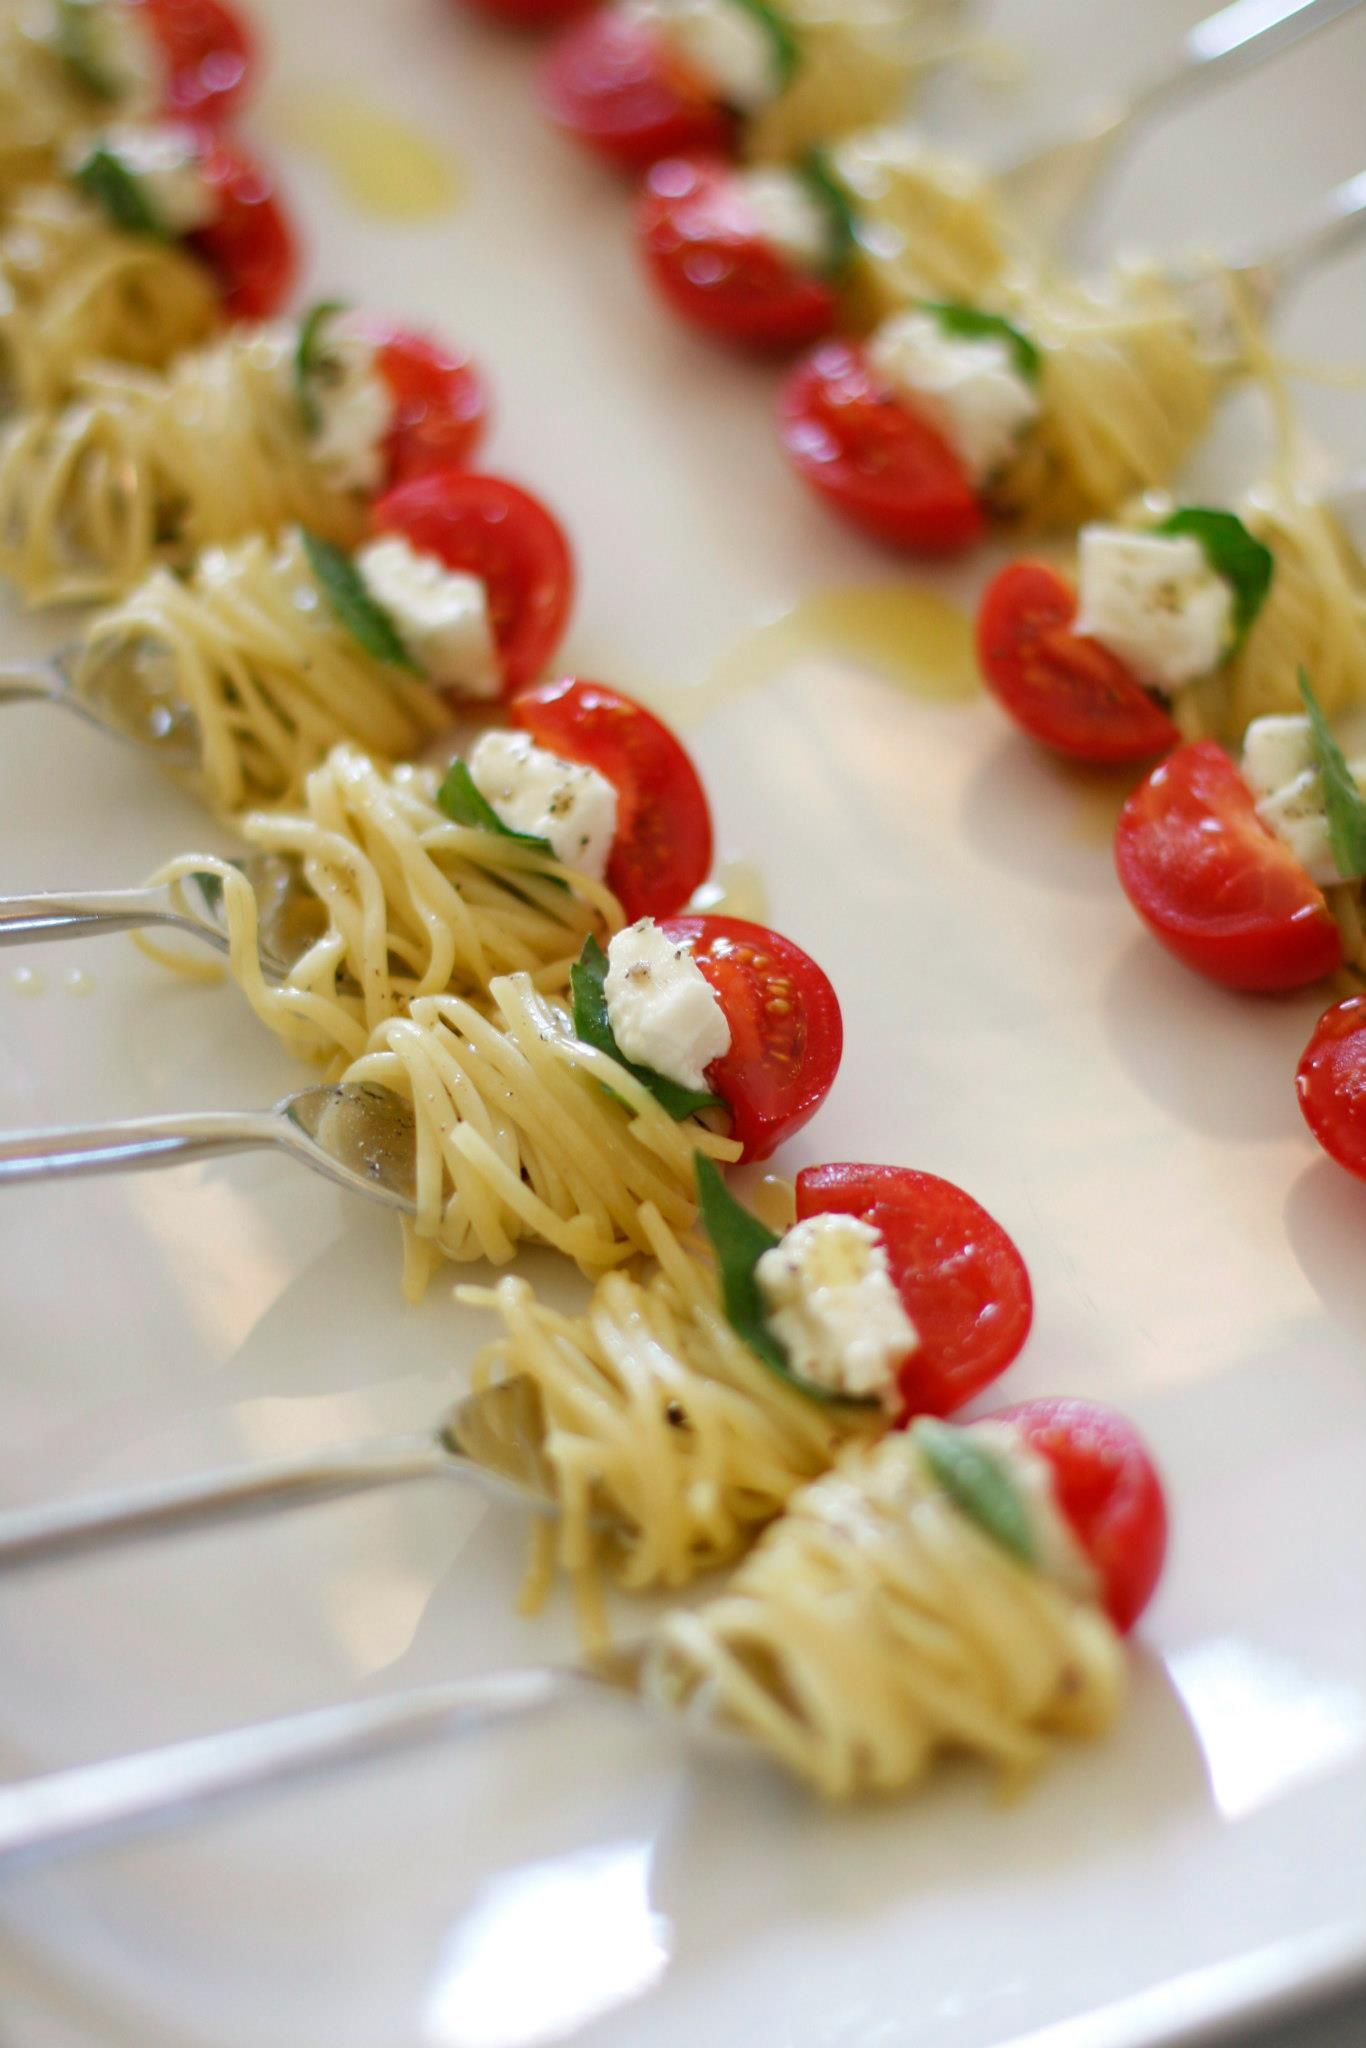 Cocktail Dinatoire Chic One Bite Of Pasta The Perfect Bite Fabulous For A Party Appetizer